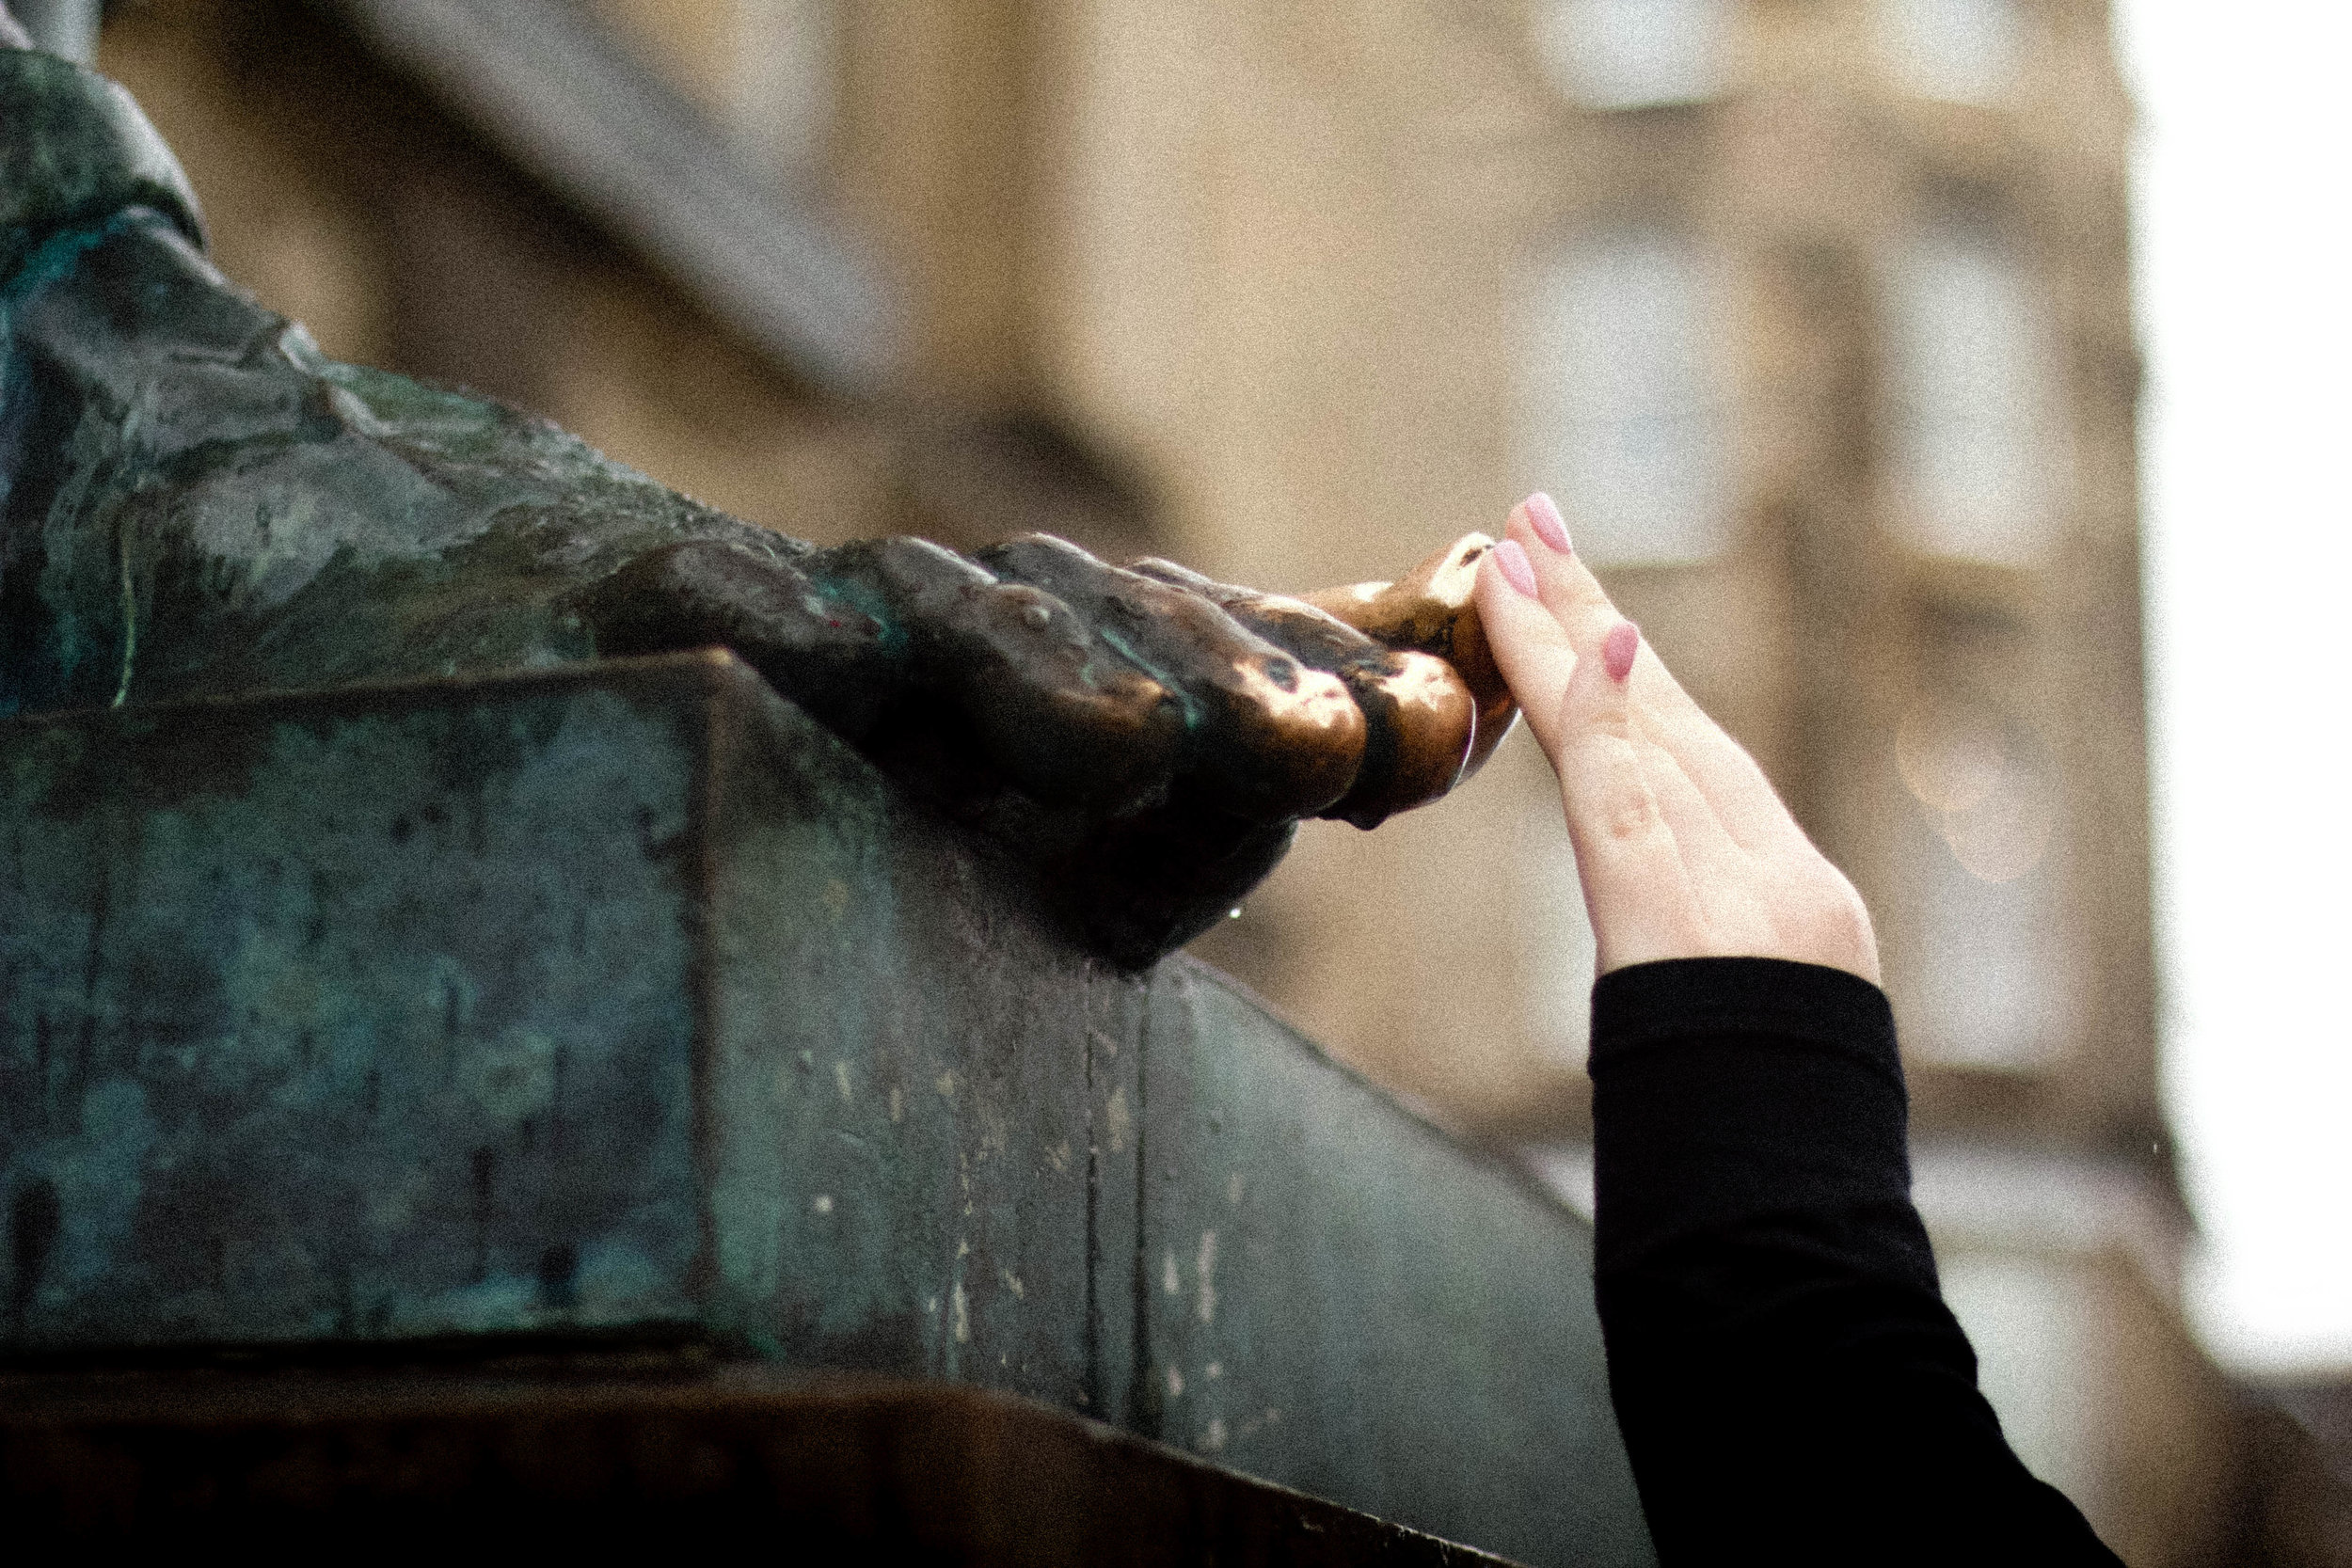 Rumor has it that it's good luck for students to rub the toe of the statue of David Hume on The Royal Mile. (Katie)